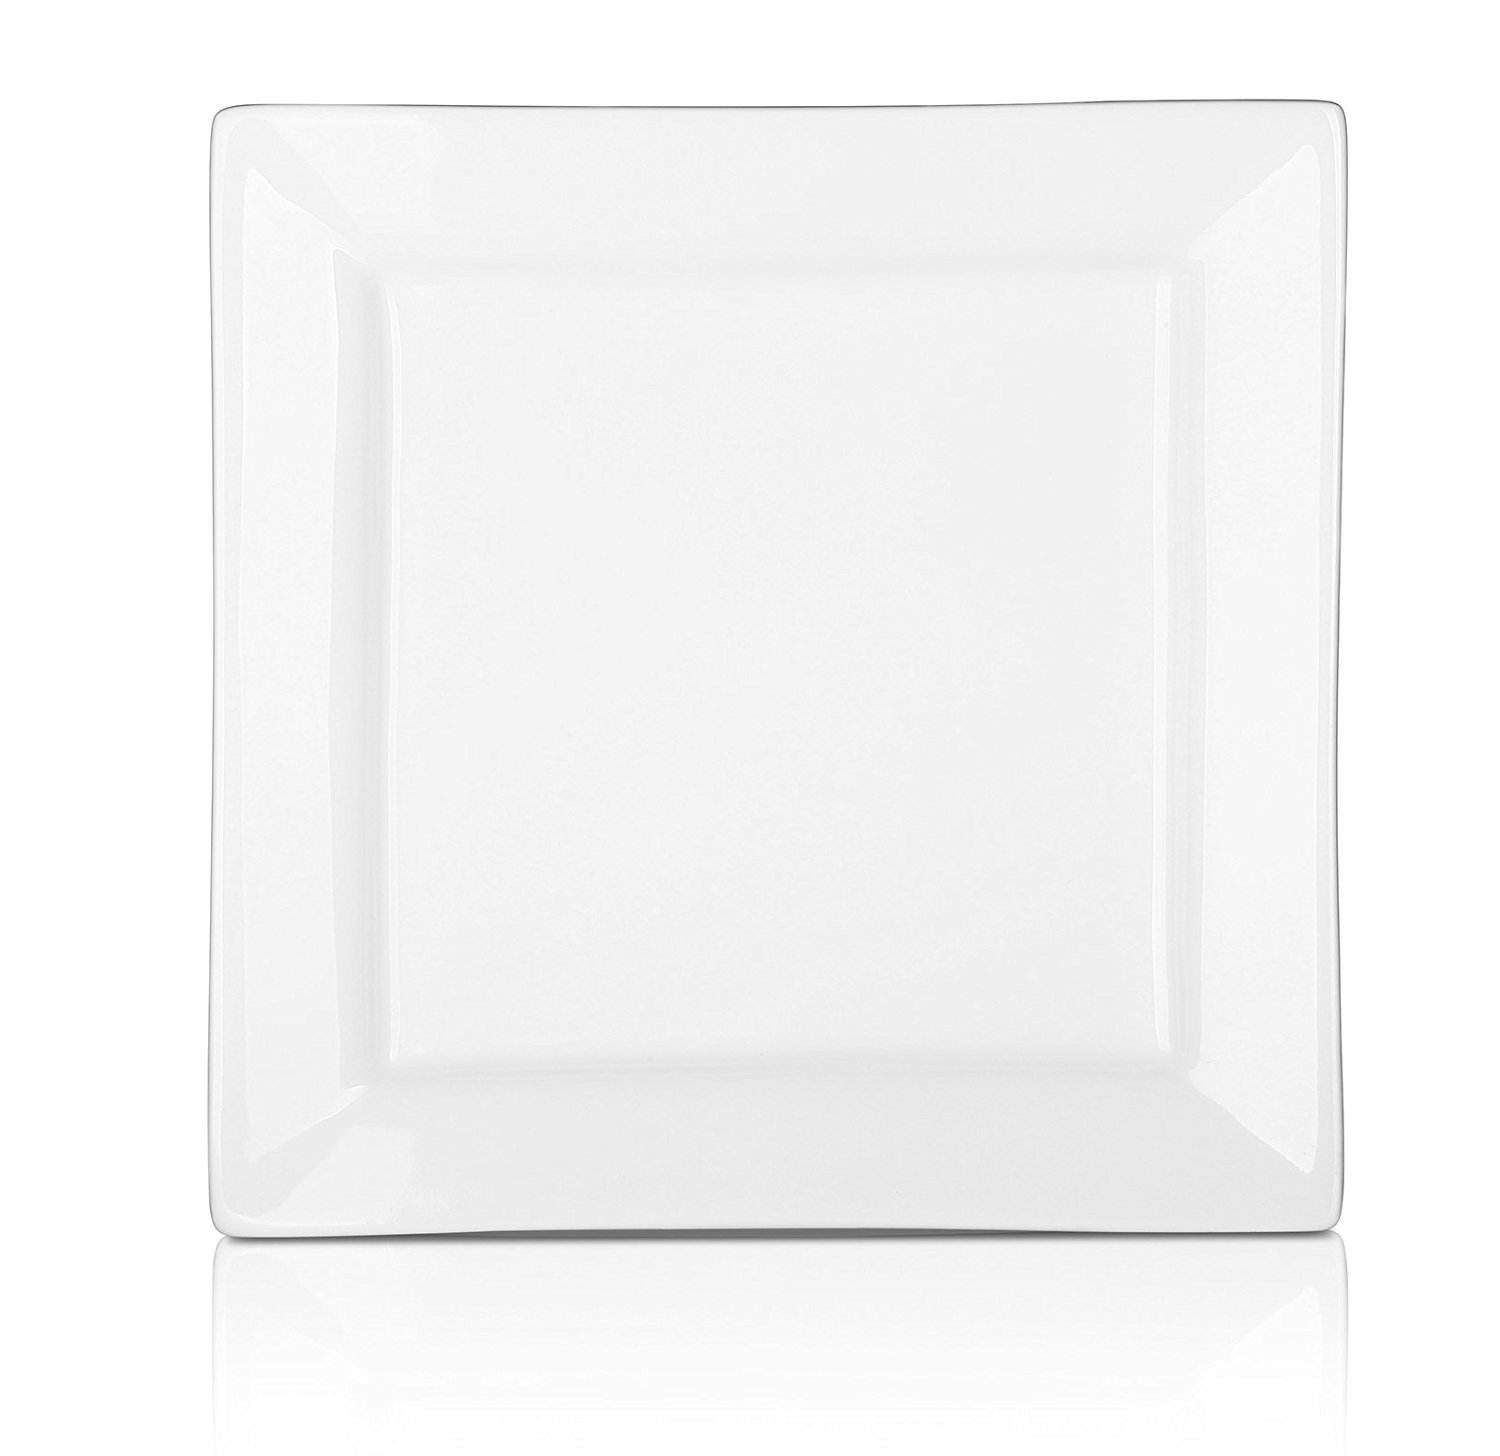 DOWAN 8 Inch Porcelain Square Plates - 4 Packs, White